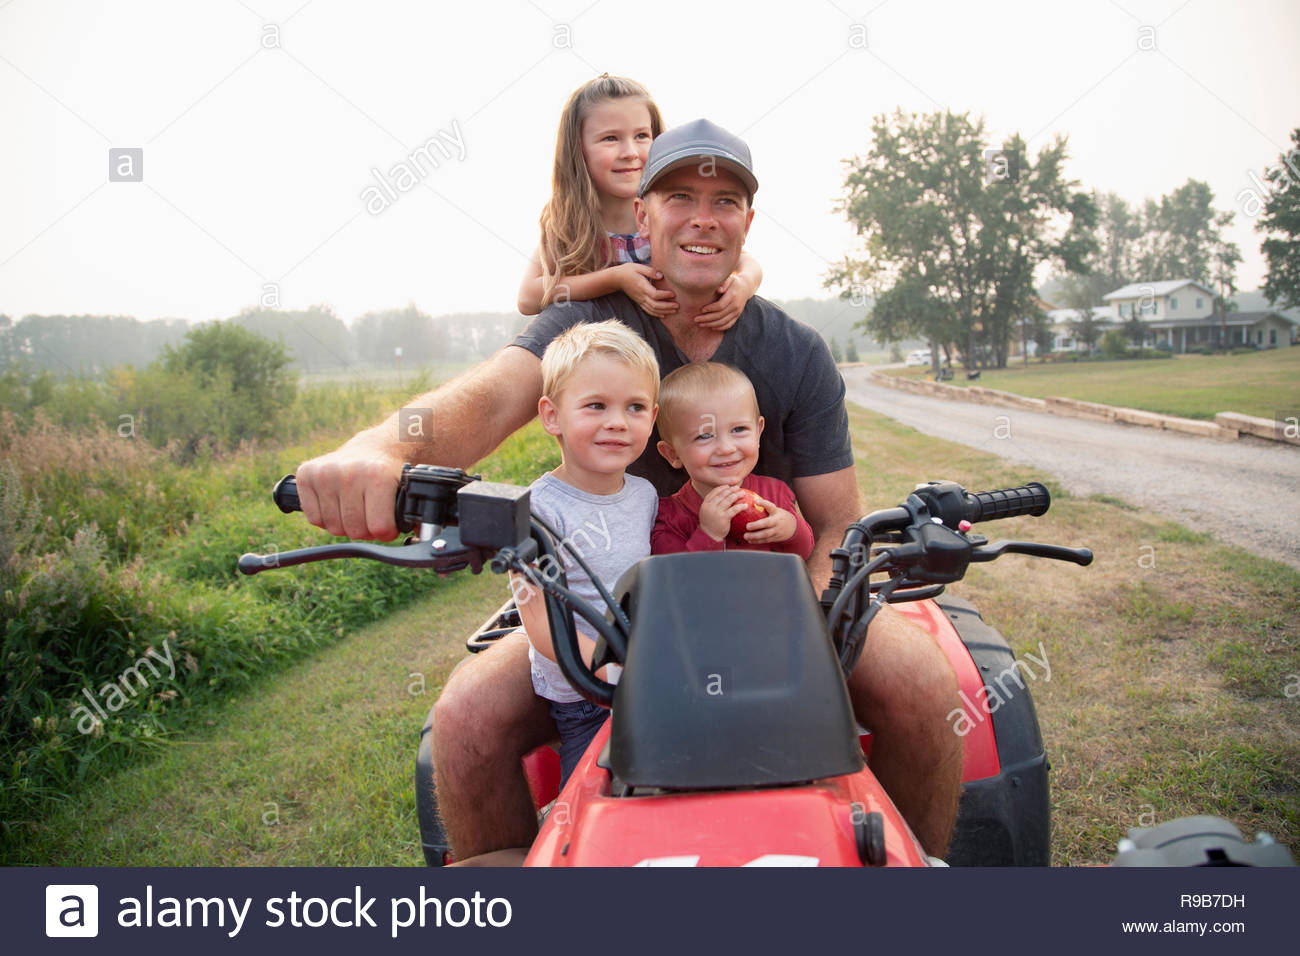 Father and young children riding quadbike on farm - Stock Image